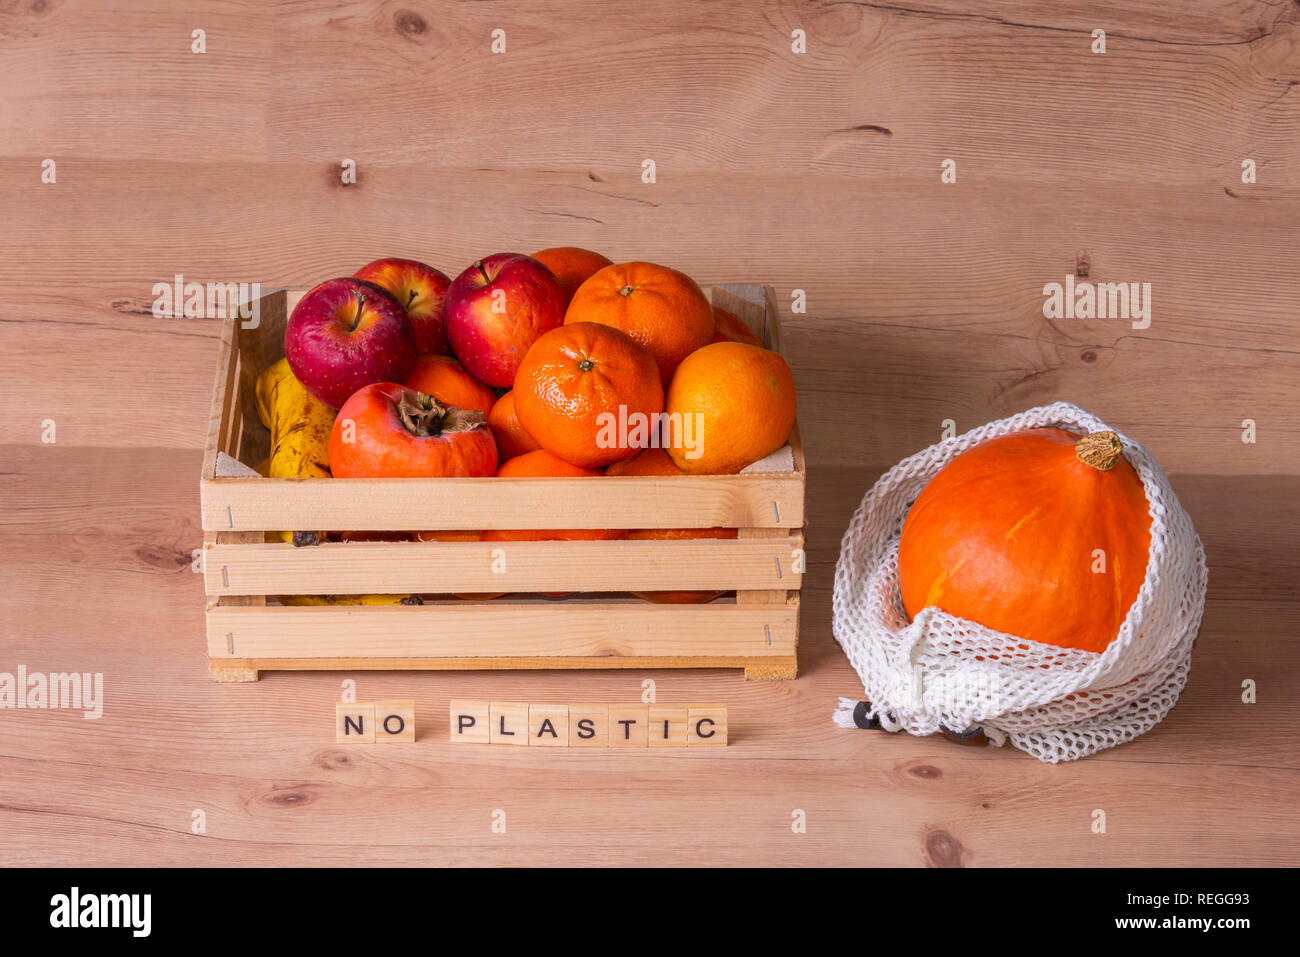 No plastic sign, zero waste home, natural product - Stock Image